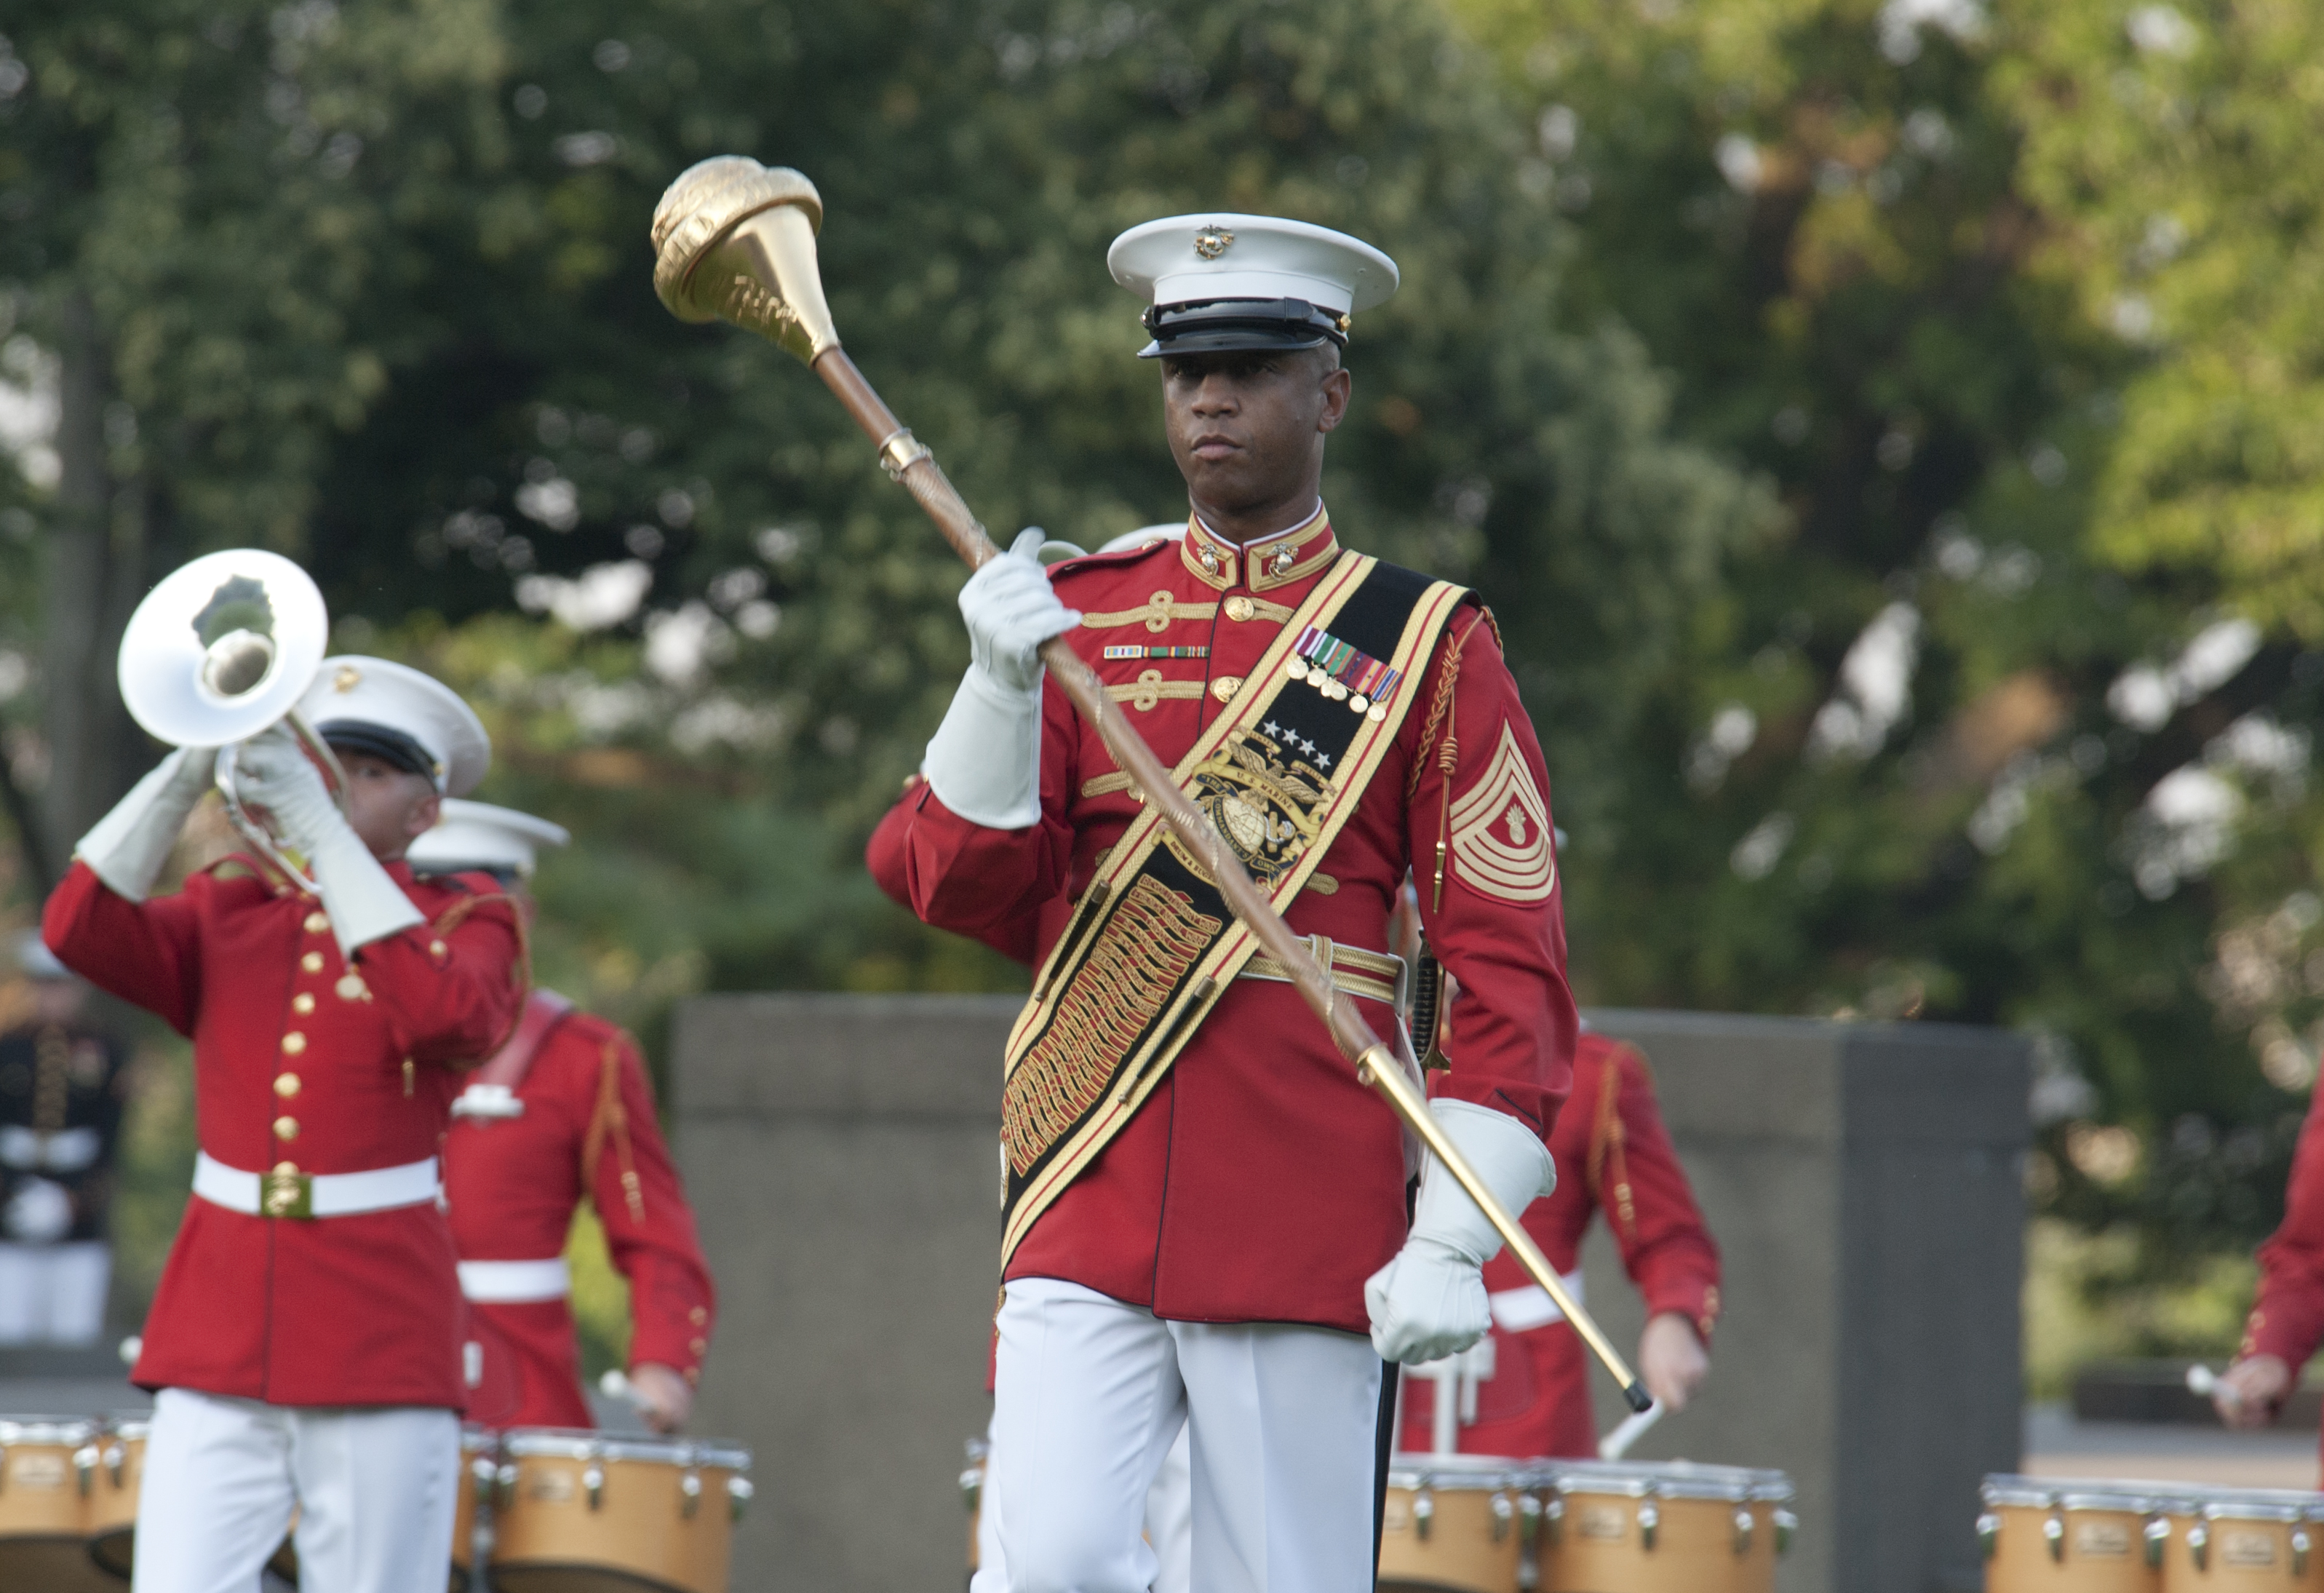 File:The drum major of the U.S. Marine Corps Drum and ...